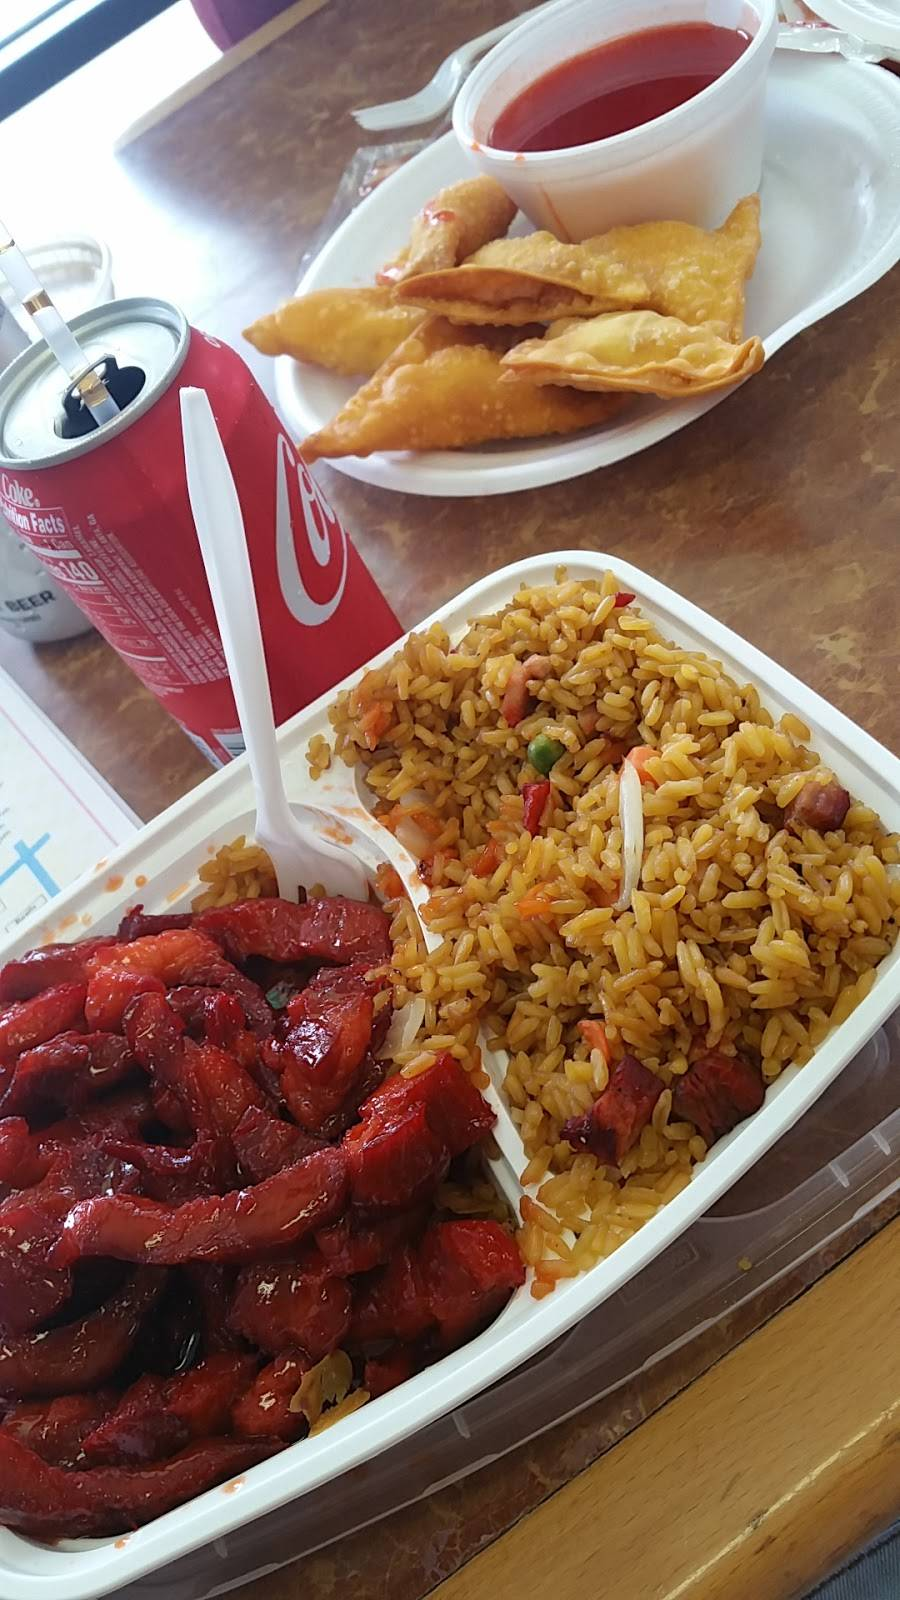 China First | restaurant | 2607 E Gulf to Lake Hwy, Inverness, FL 34453, USA | 3523414711 OR +1 352-341-4711